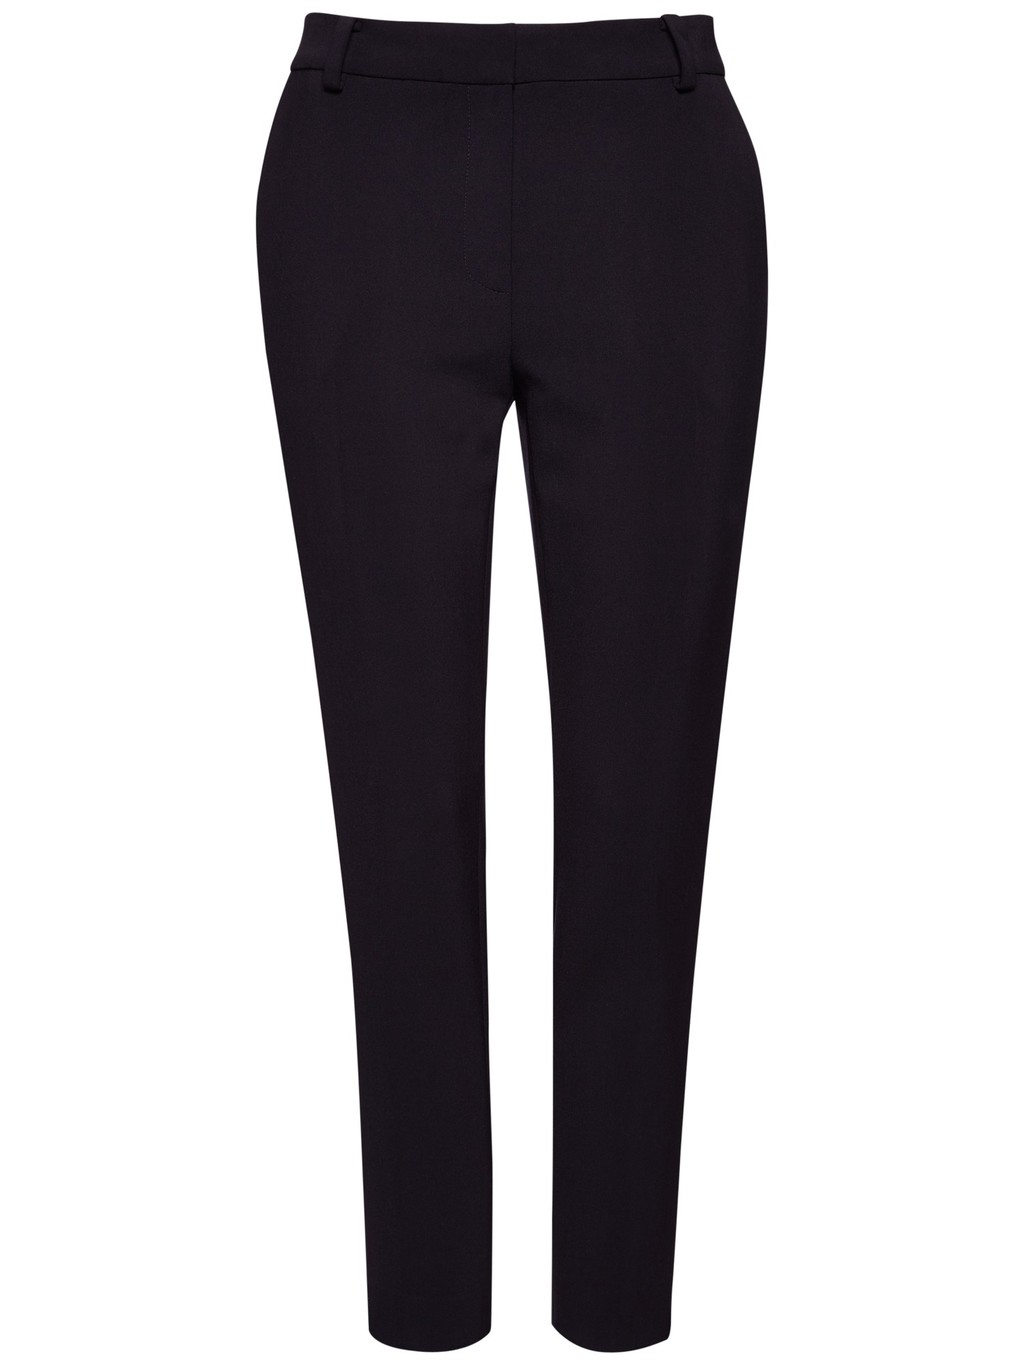 Stretch 7/8ths Trousers - pattern: plain; style: capri; waist: mid/regular rise; predominant colour: navy; occasions: work, creative work; length: ankle length; fibres: viscose/rayon - 100%; waist detail: feature waist detail; fit: slim leg; pattern type: fabric; texture group: woven light midweight; season: a/w 2014